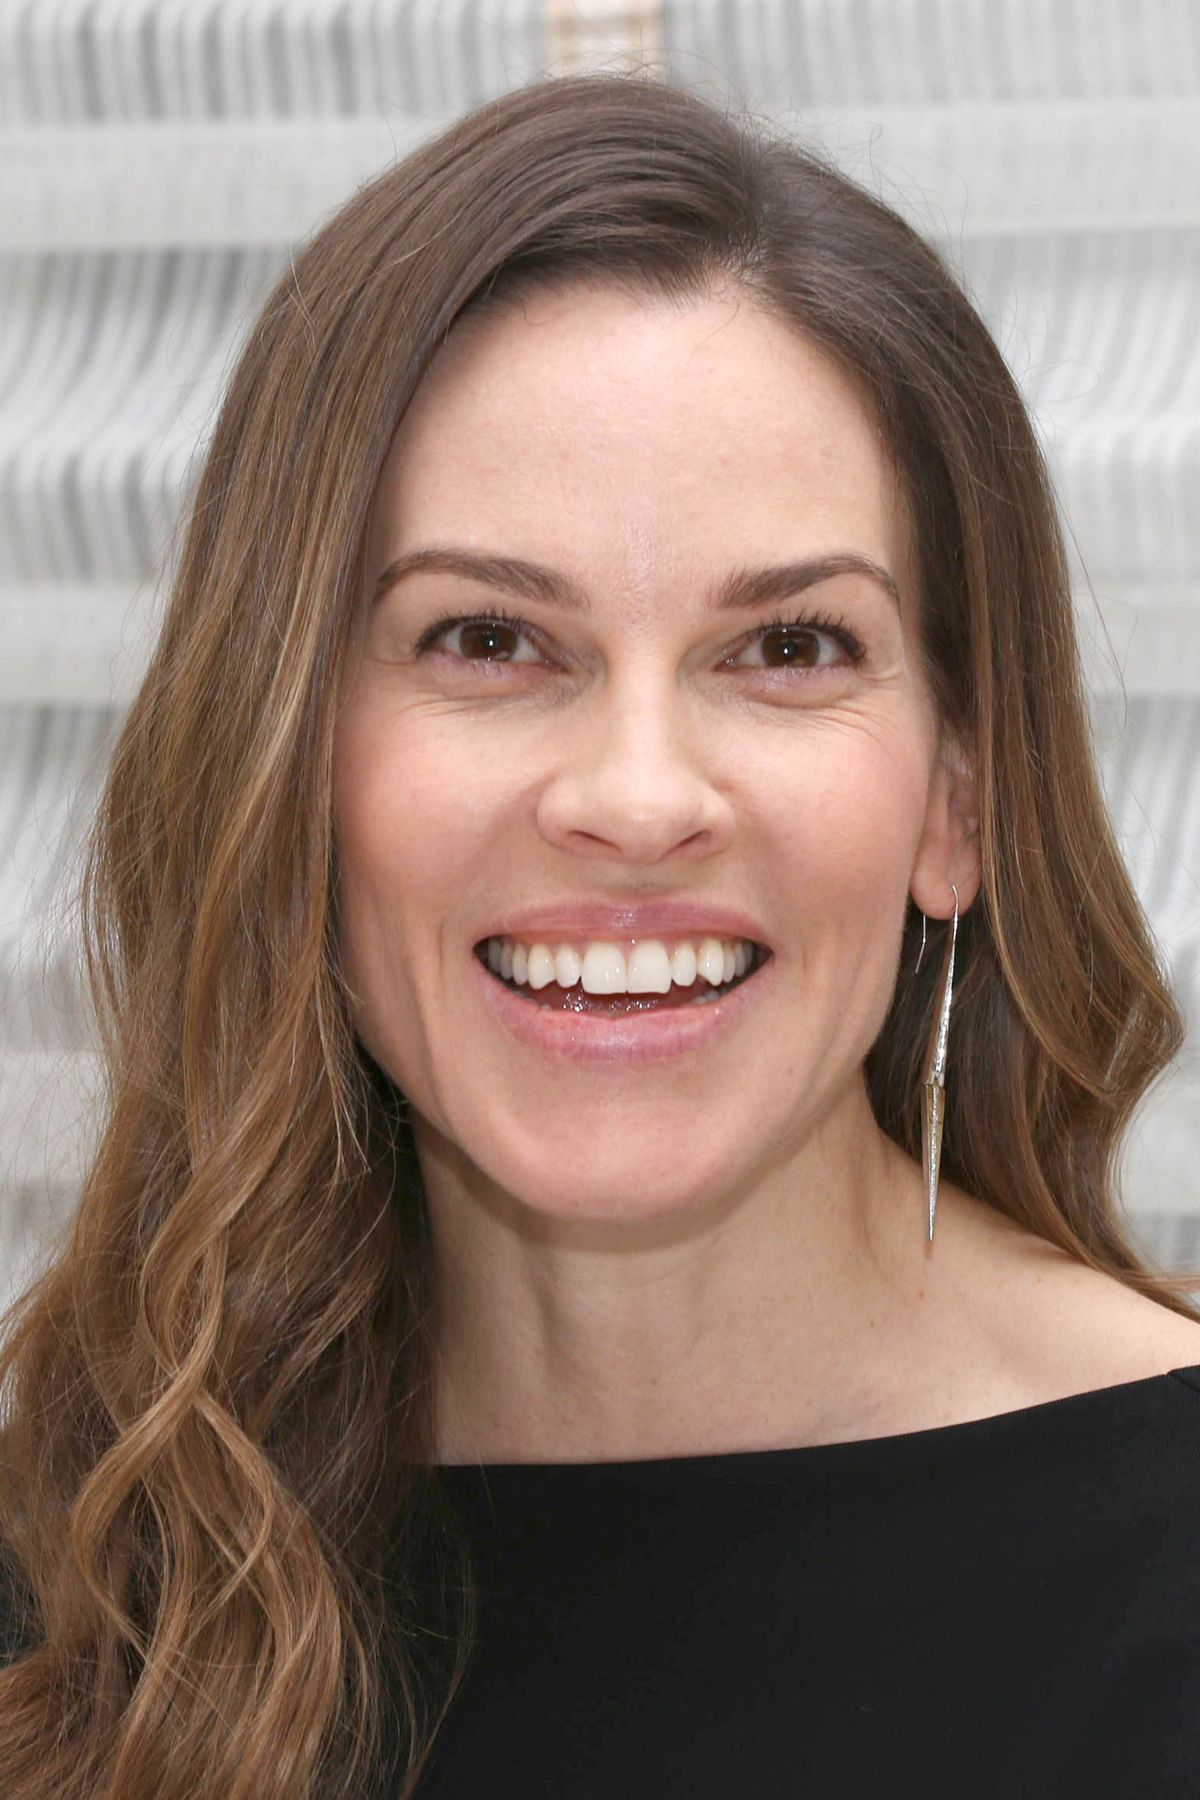 Communication on this topic: Daisy and Violet Hilton, hilary-swank/